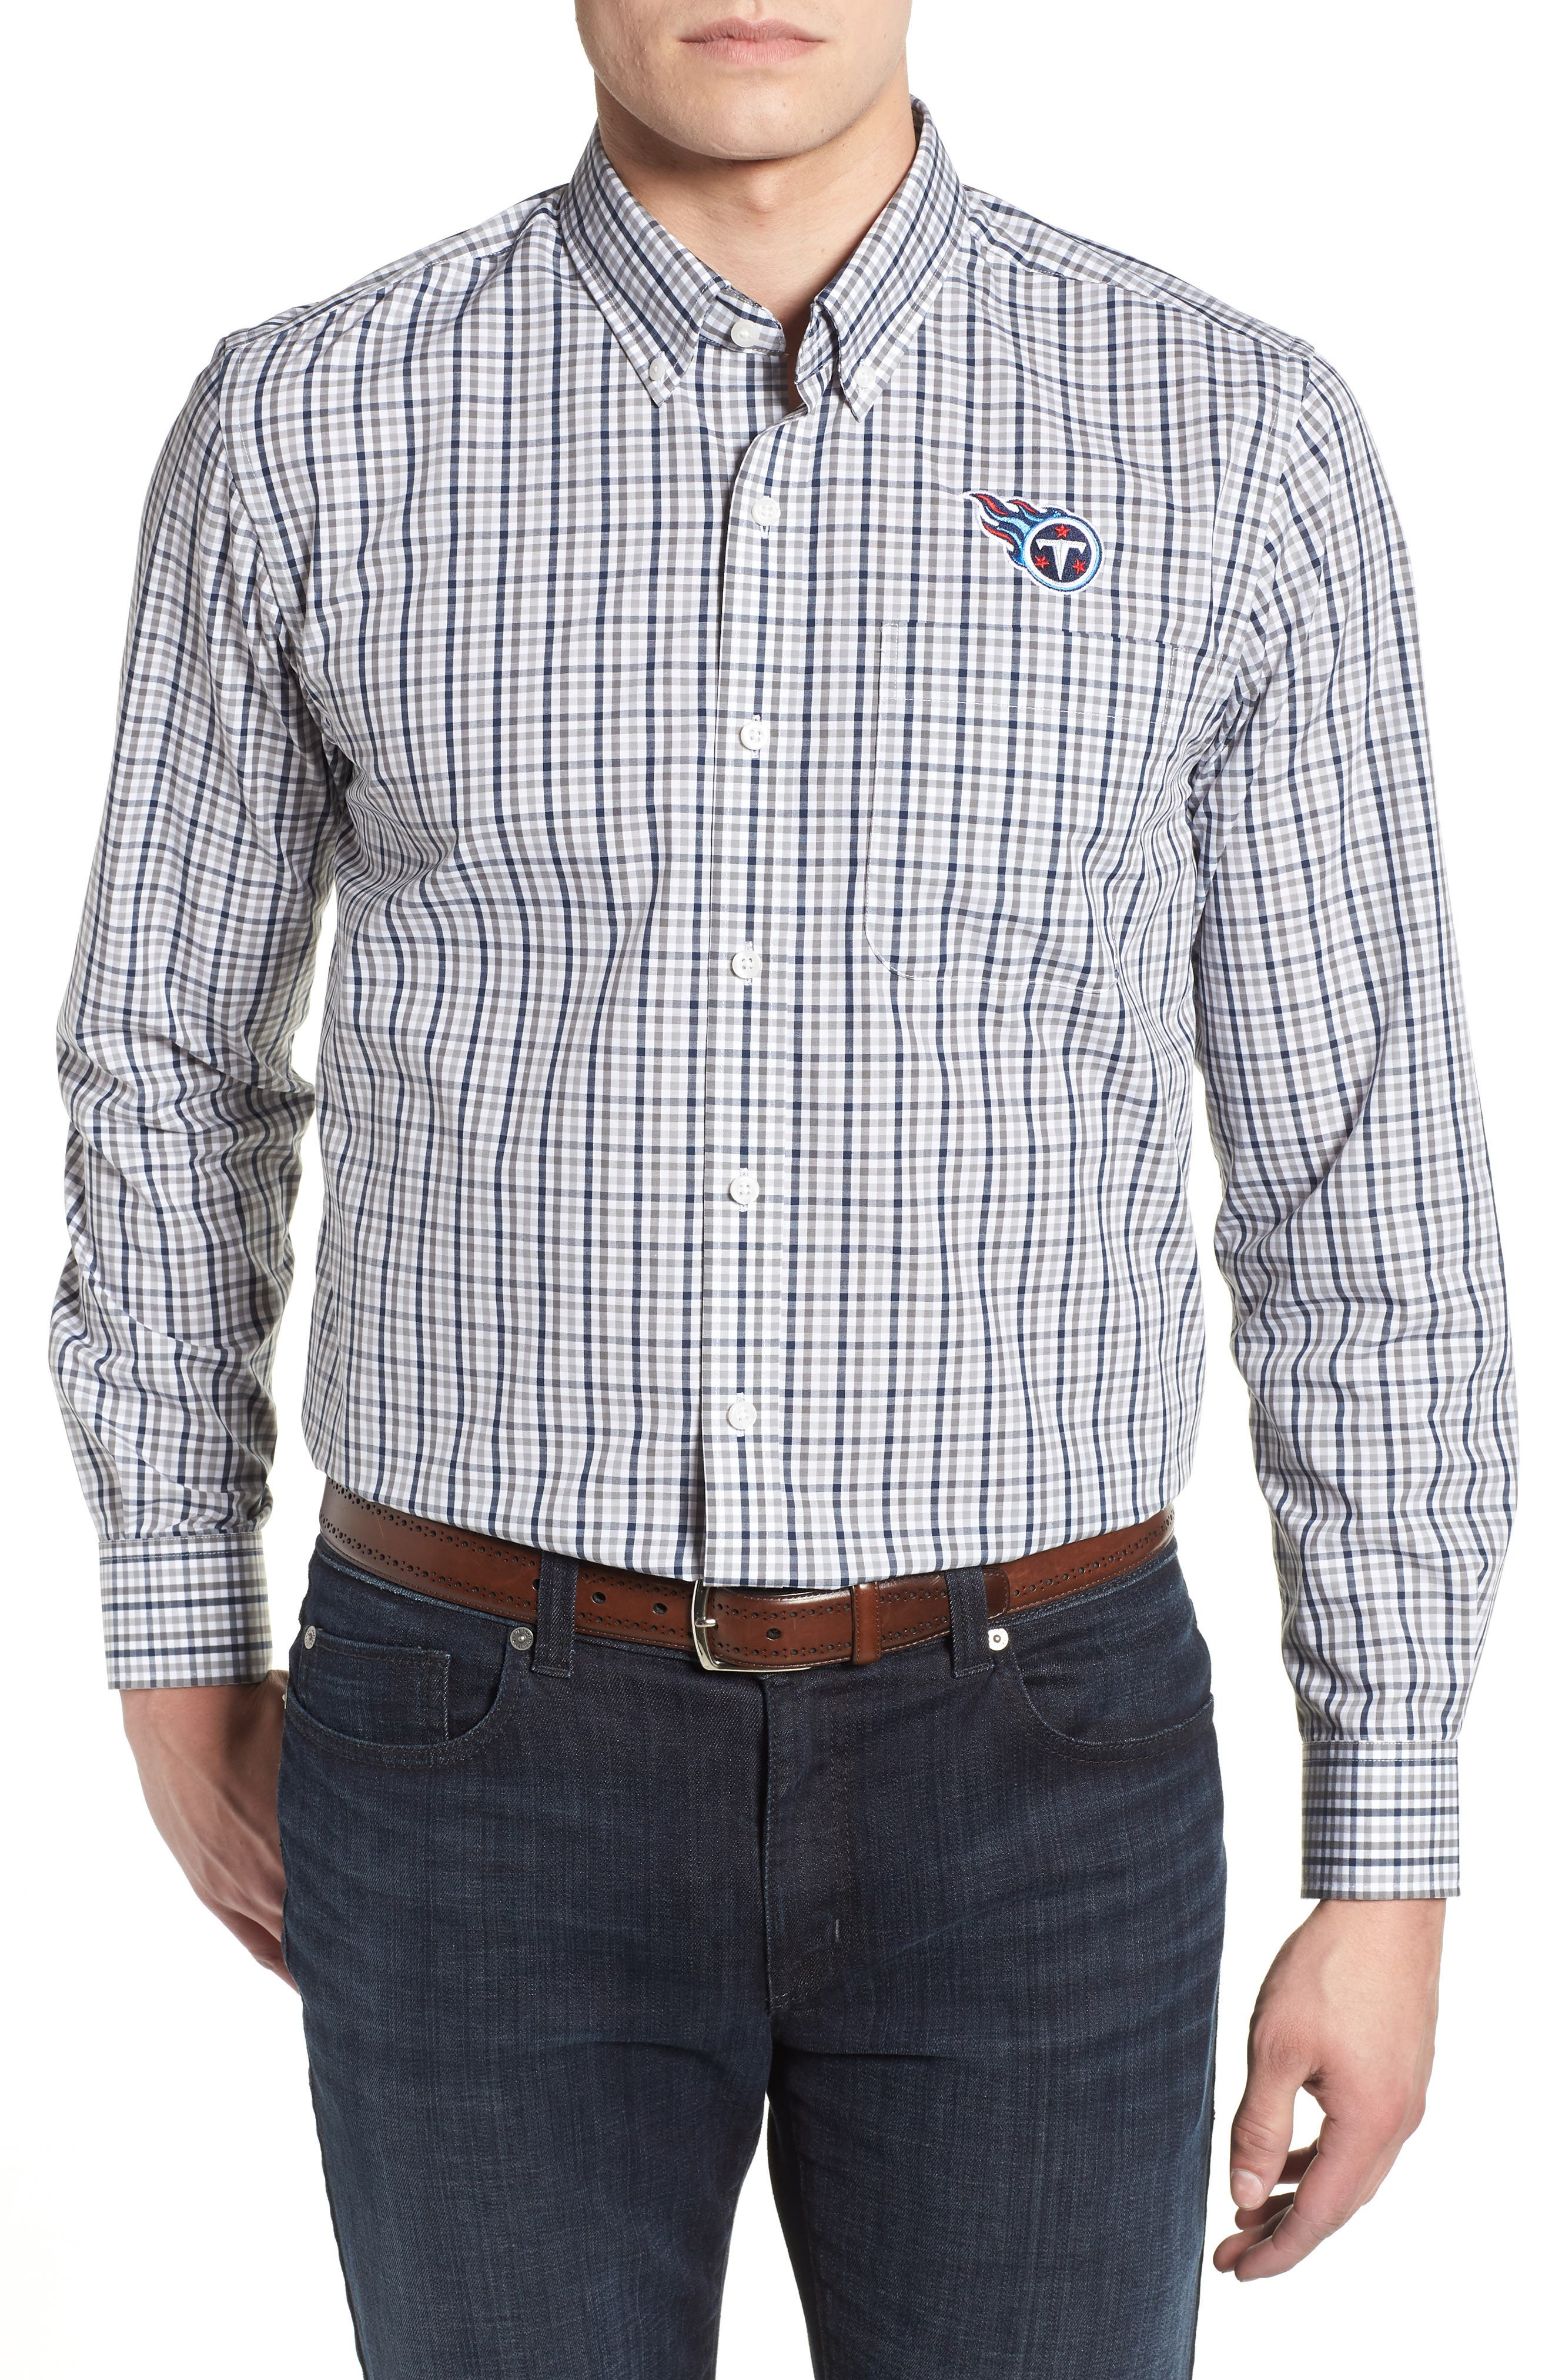 Tennessee Titans - Gilman Regular Fit Plaid Sport Shirt,                             Main thumbnail 1, color,                             LIBERTY NAVY